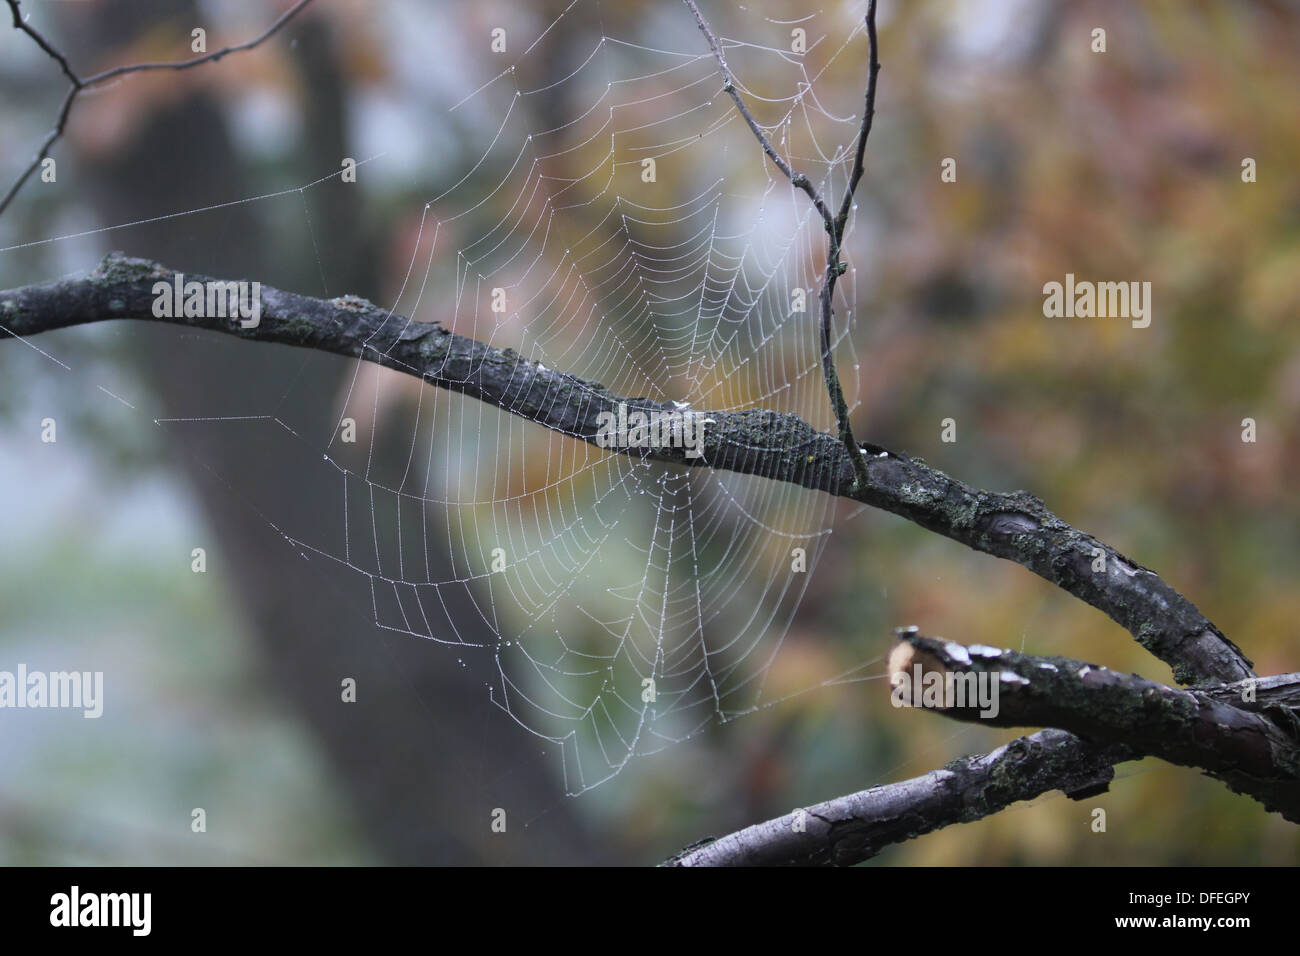 Orb spider web on branch Stock Photo